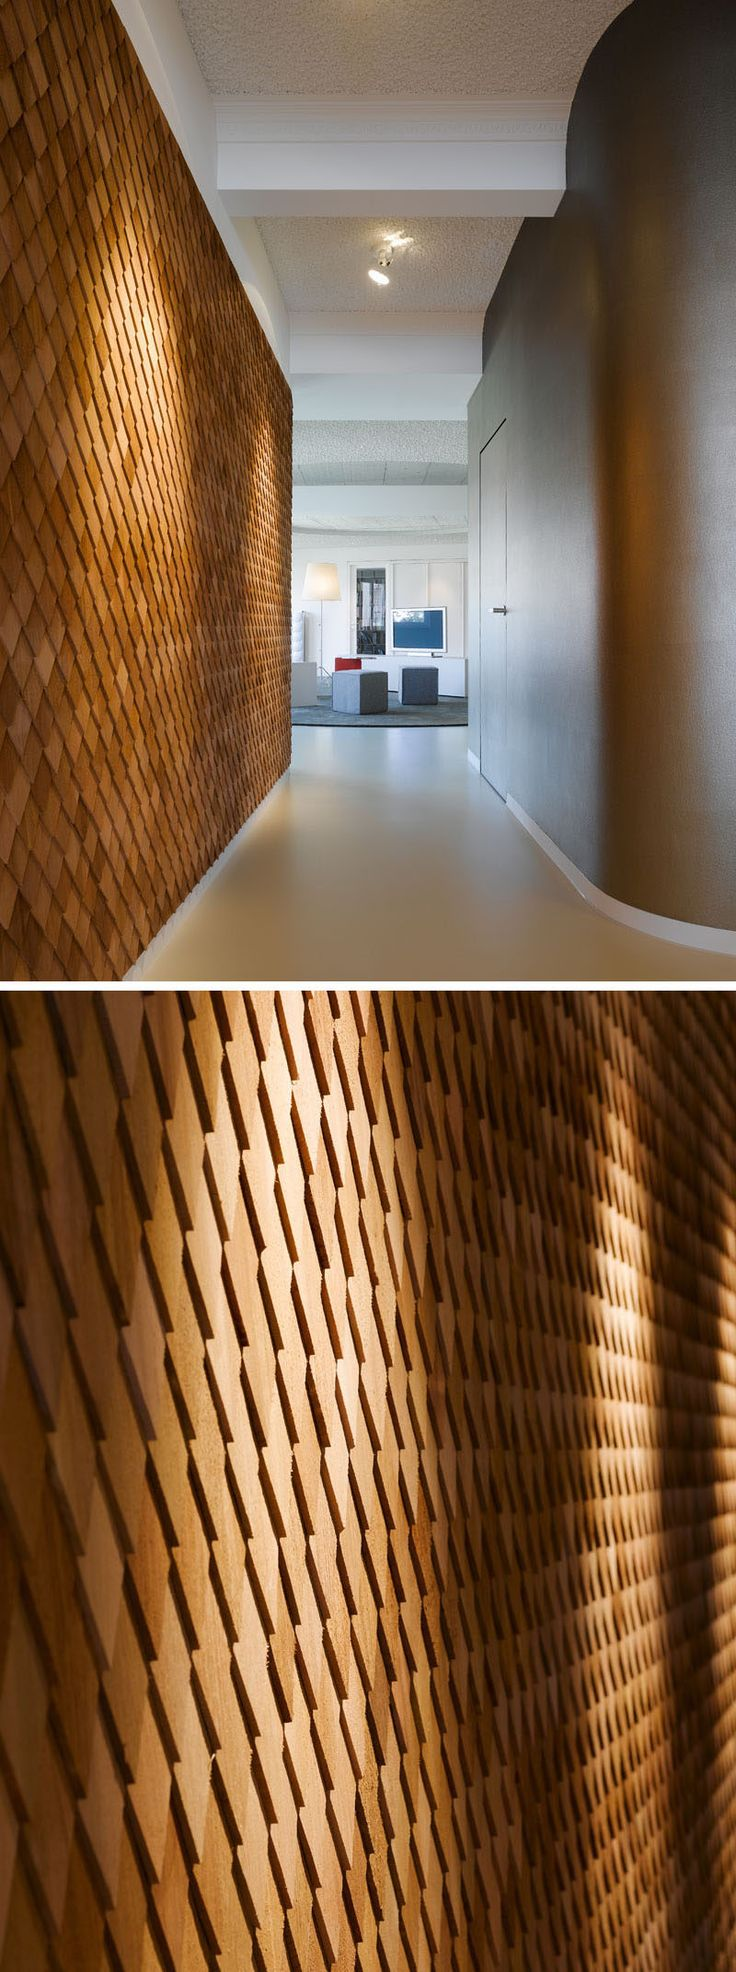 Best Using Wood Shingles To Create An Accent Wall Adds Warmth 640 x 480